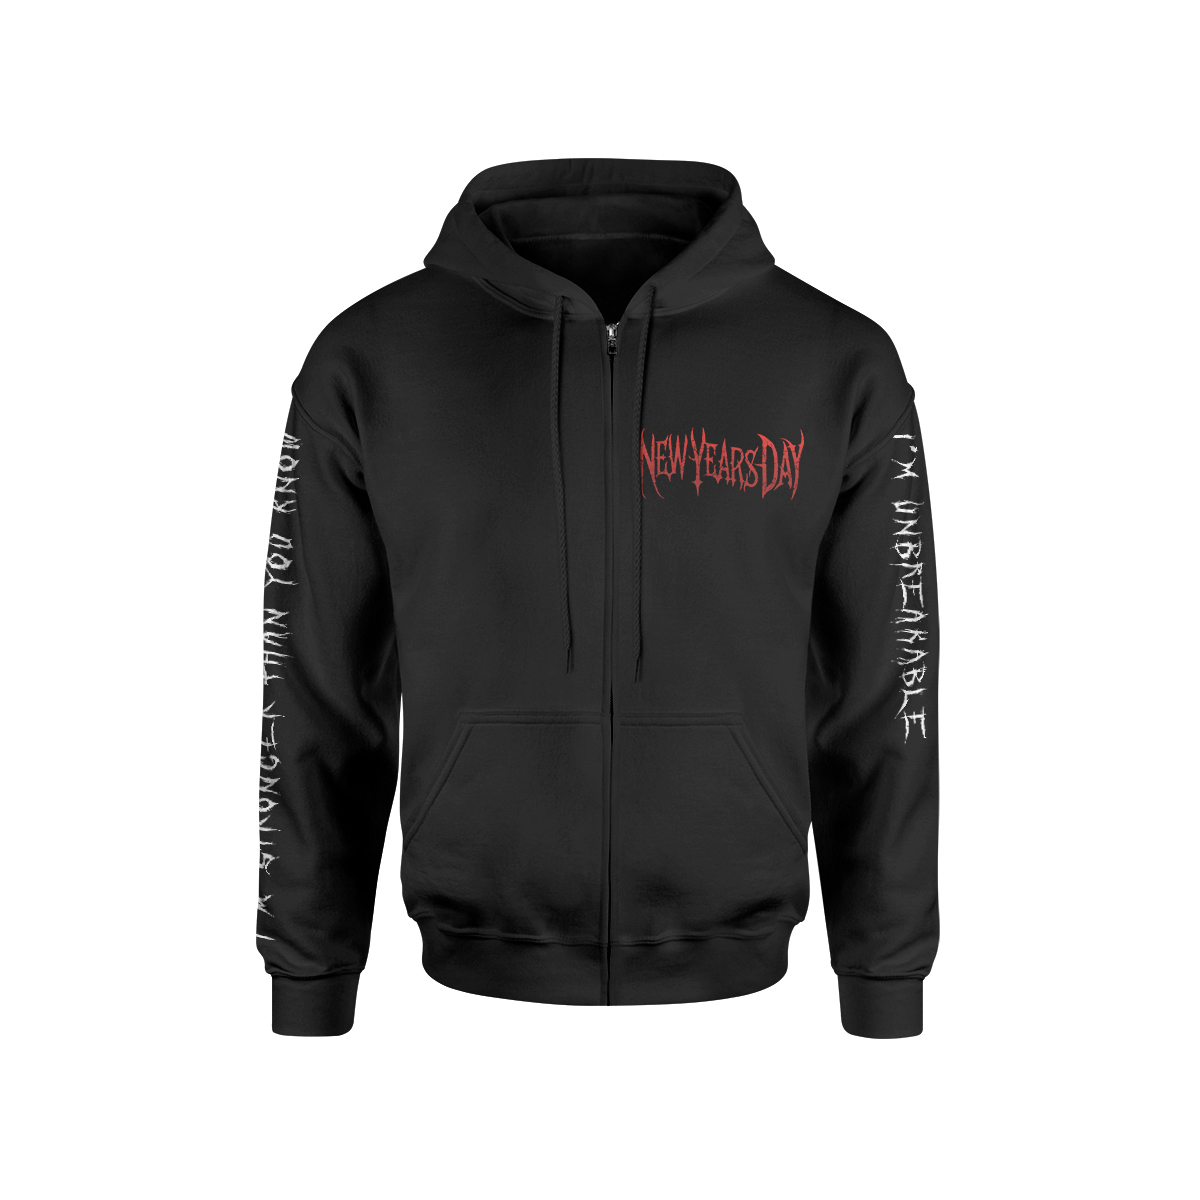 New Years Day - Unbreakable Hoodie